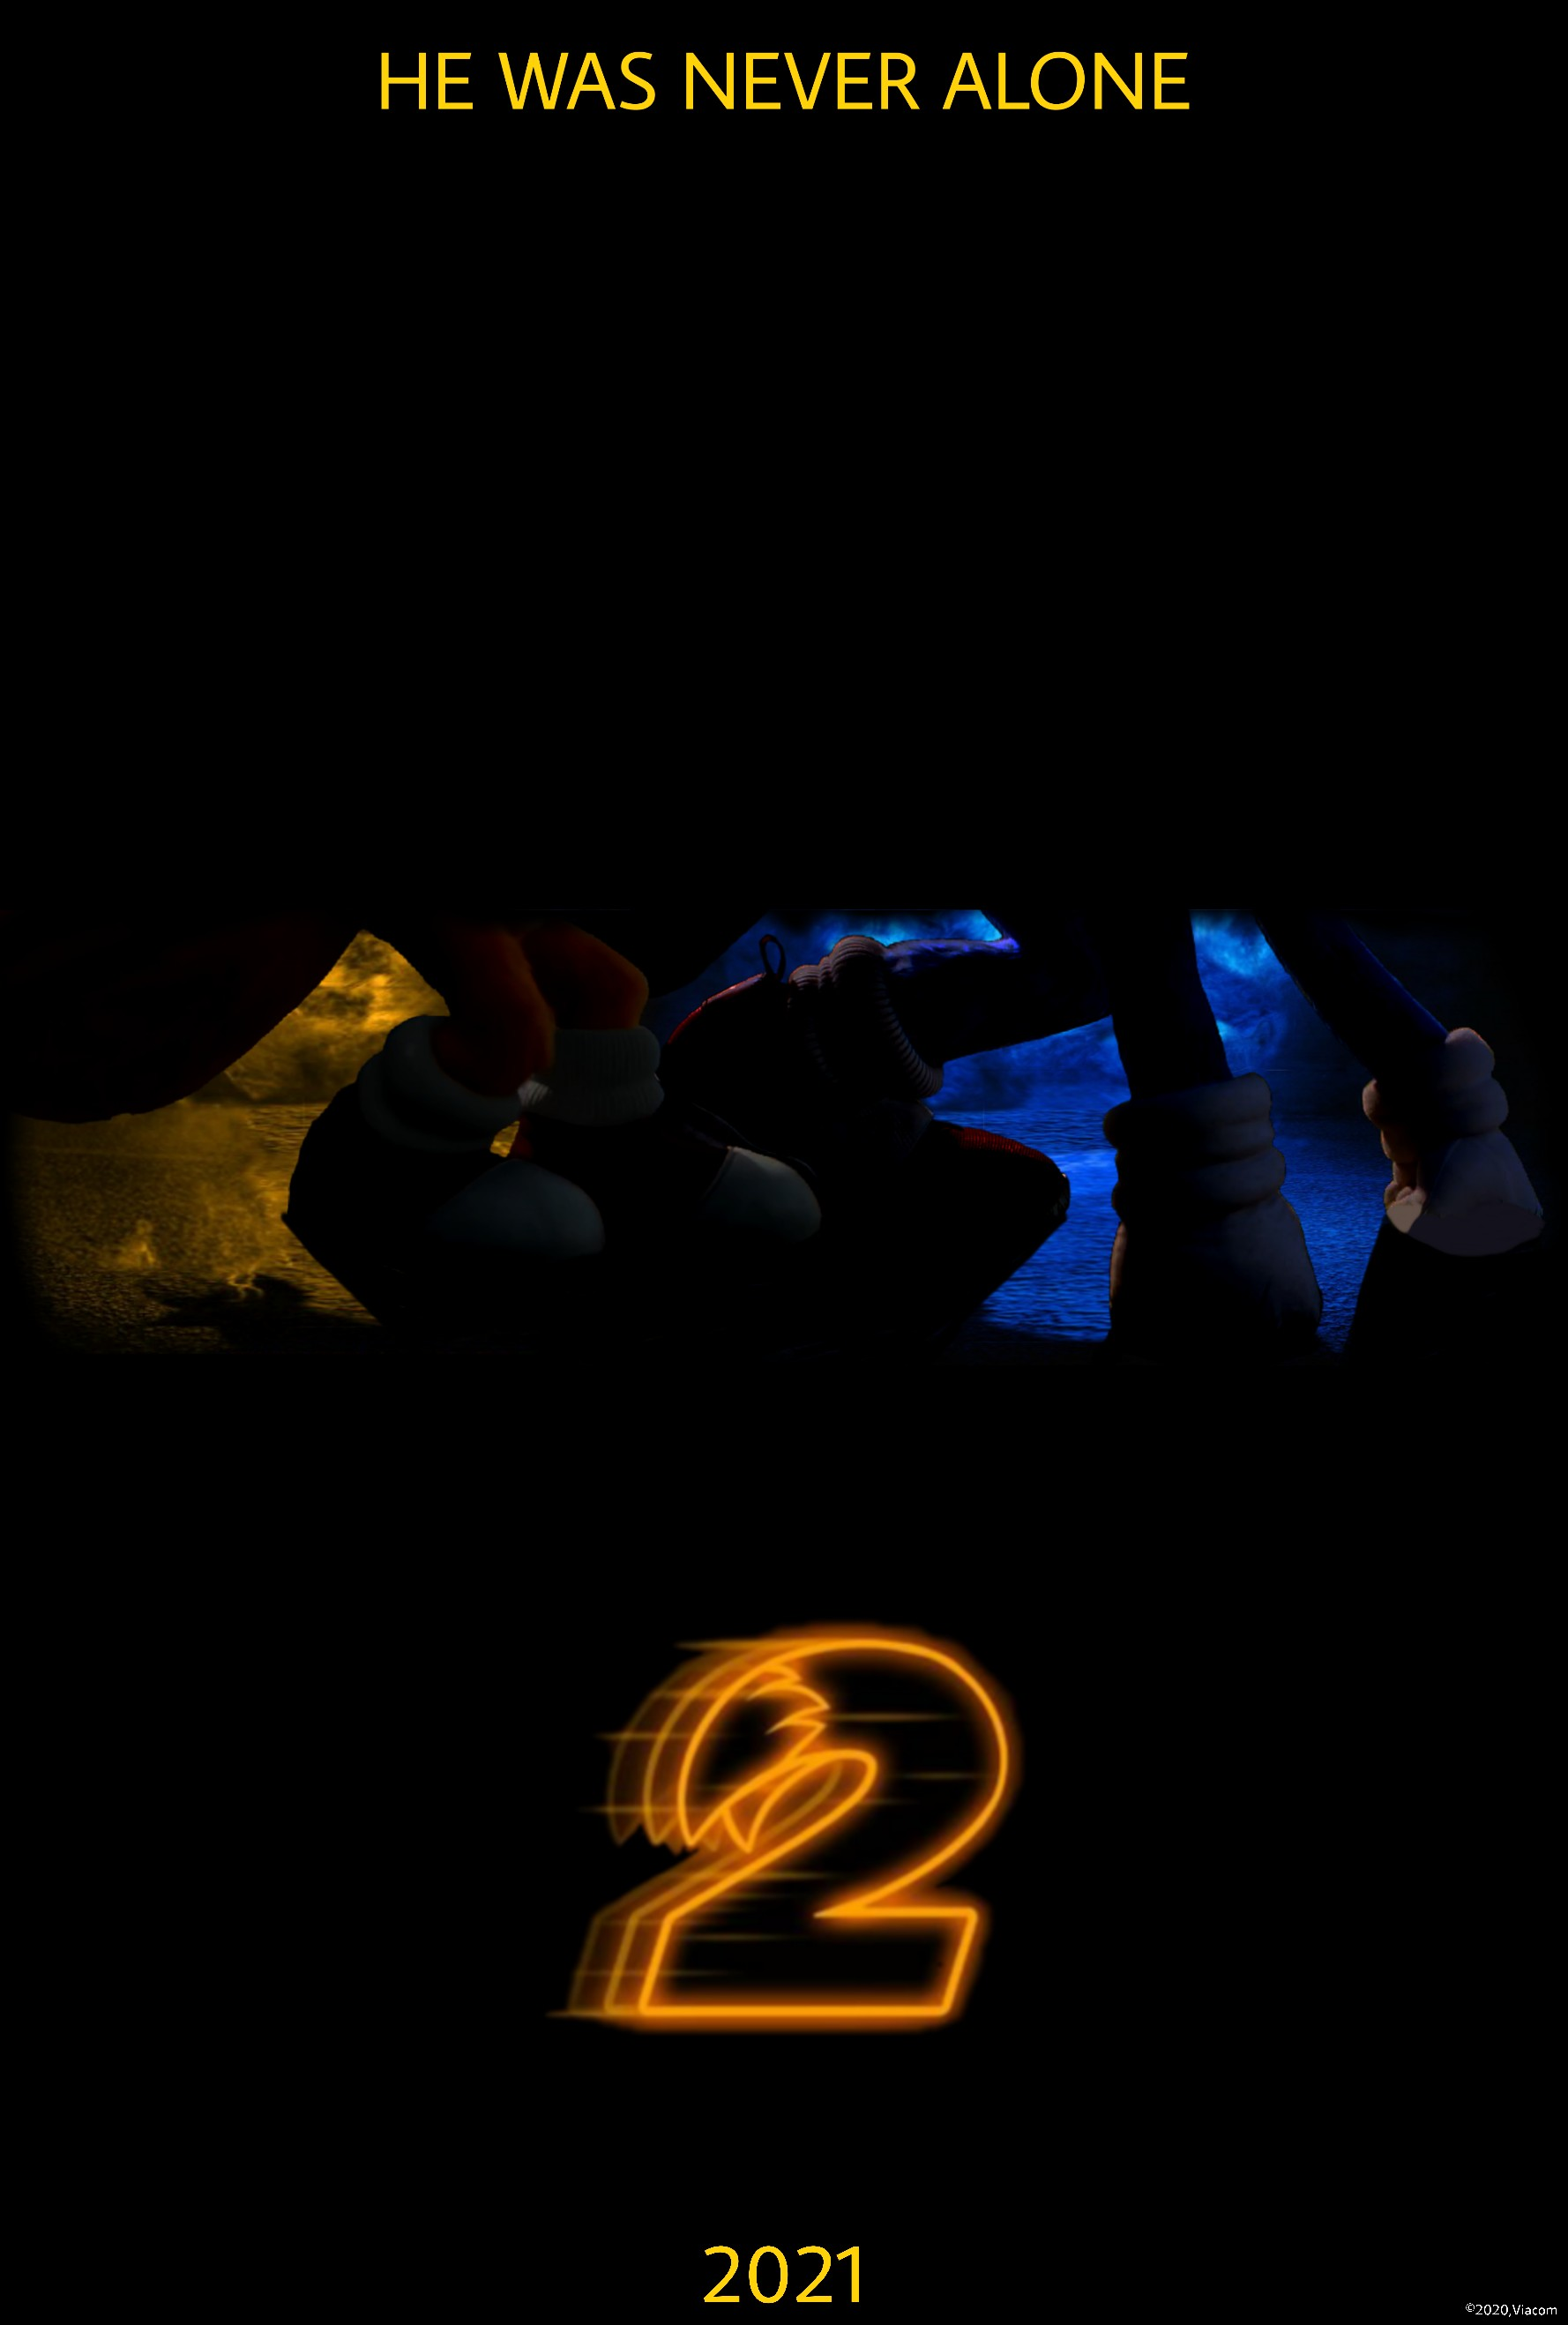 Sonic 2 Movie Teaser Poster By Abealy2 On Deviantart